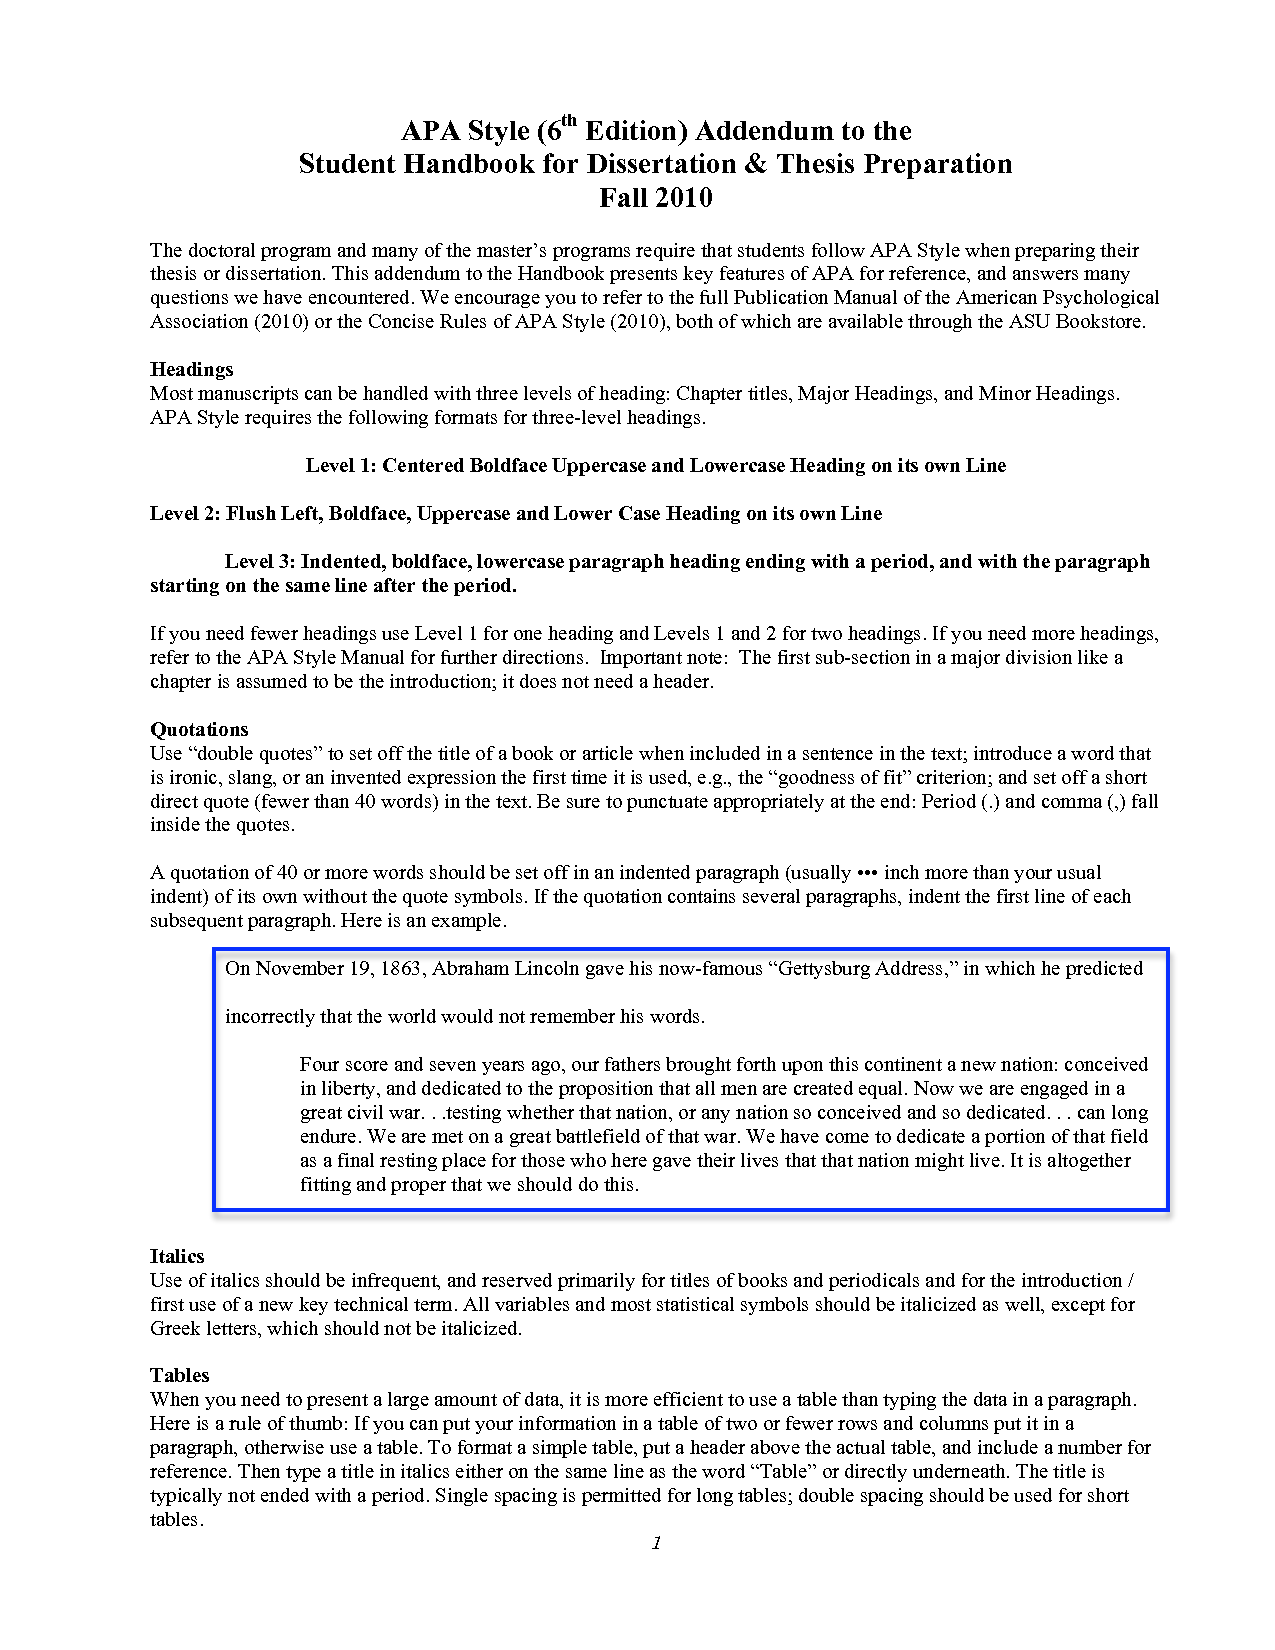 004 Apa Format Research Paper Example 6th Edition Sample Colesecolossus Elegant Header Archaicawful Full